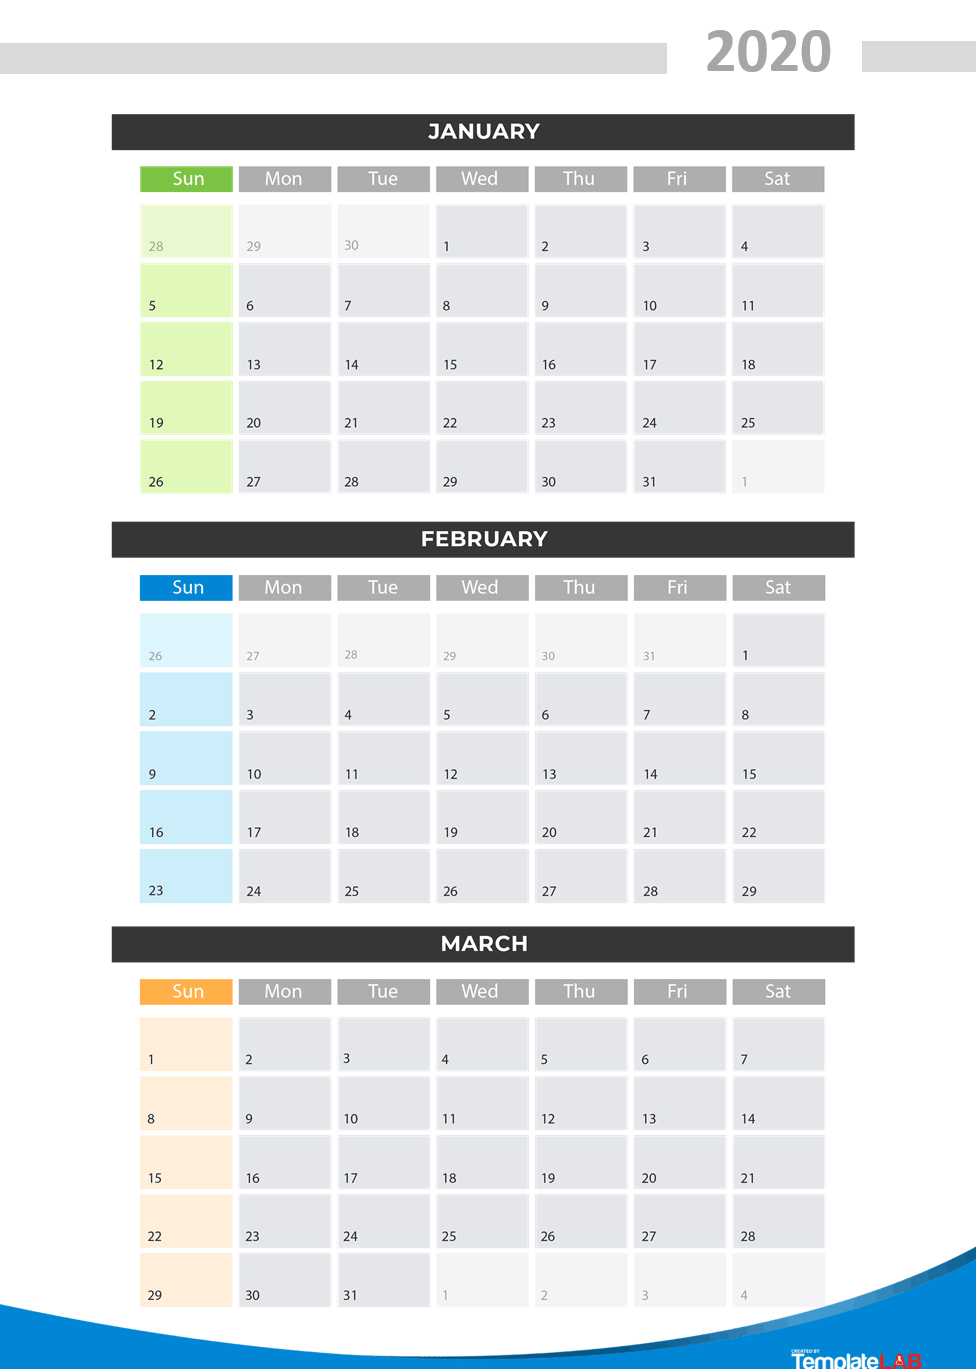 2020 Printable Calendars [Monthly, With Holidays, Yearly] ᐅ for 2020 Quarterly Calendar Printable Free